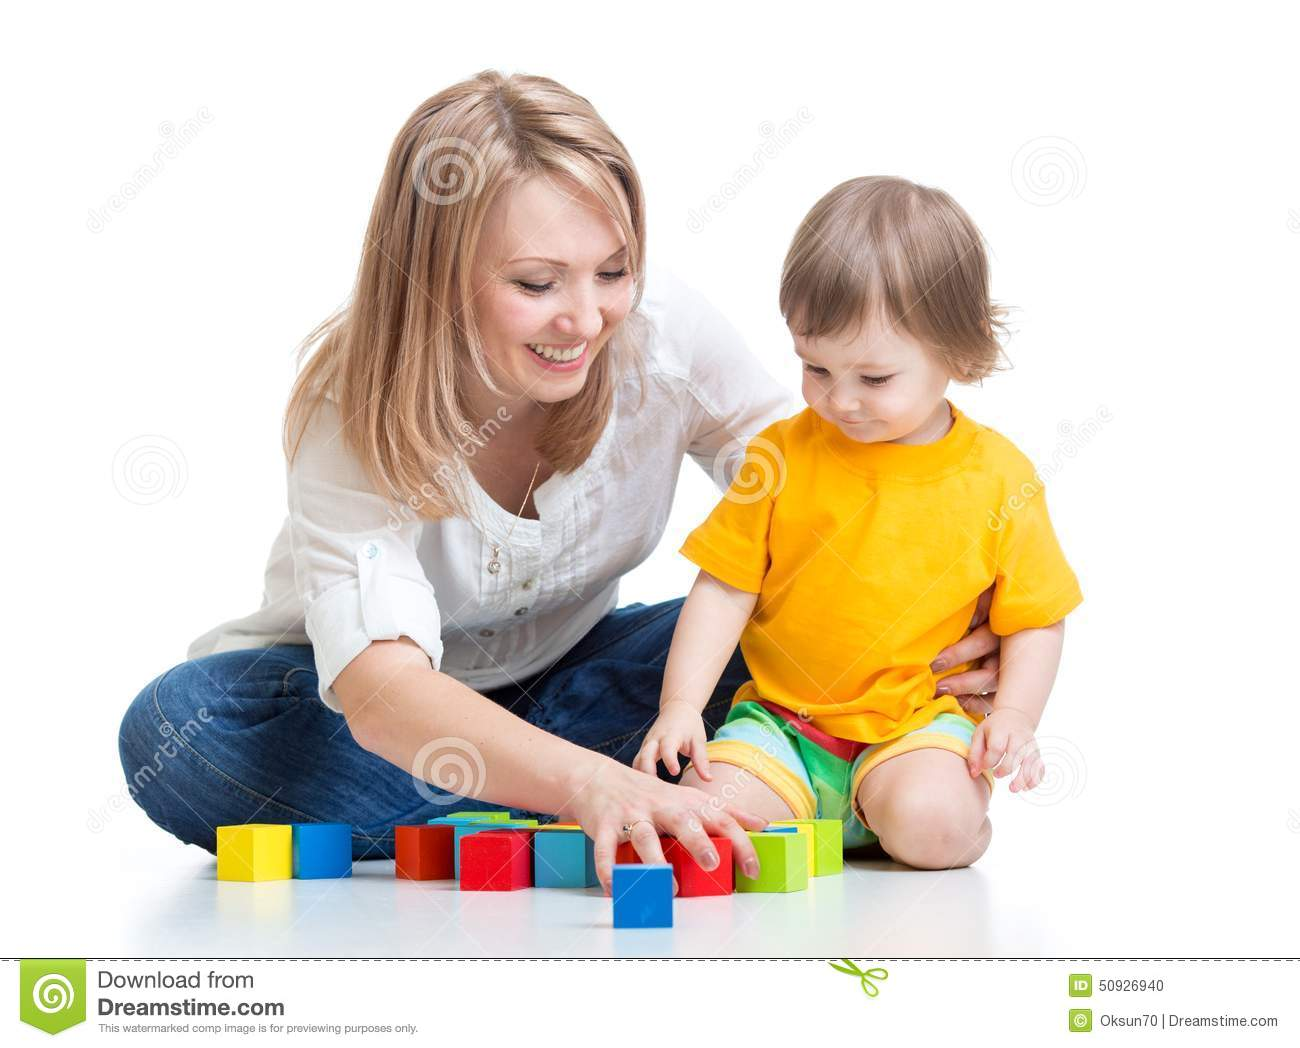 how to call a parent constructor in child constructor